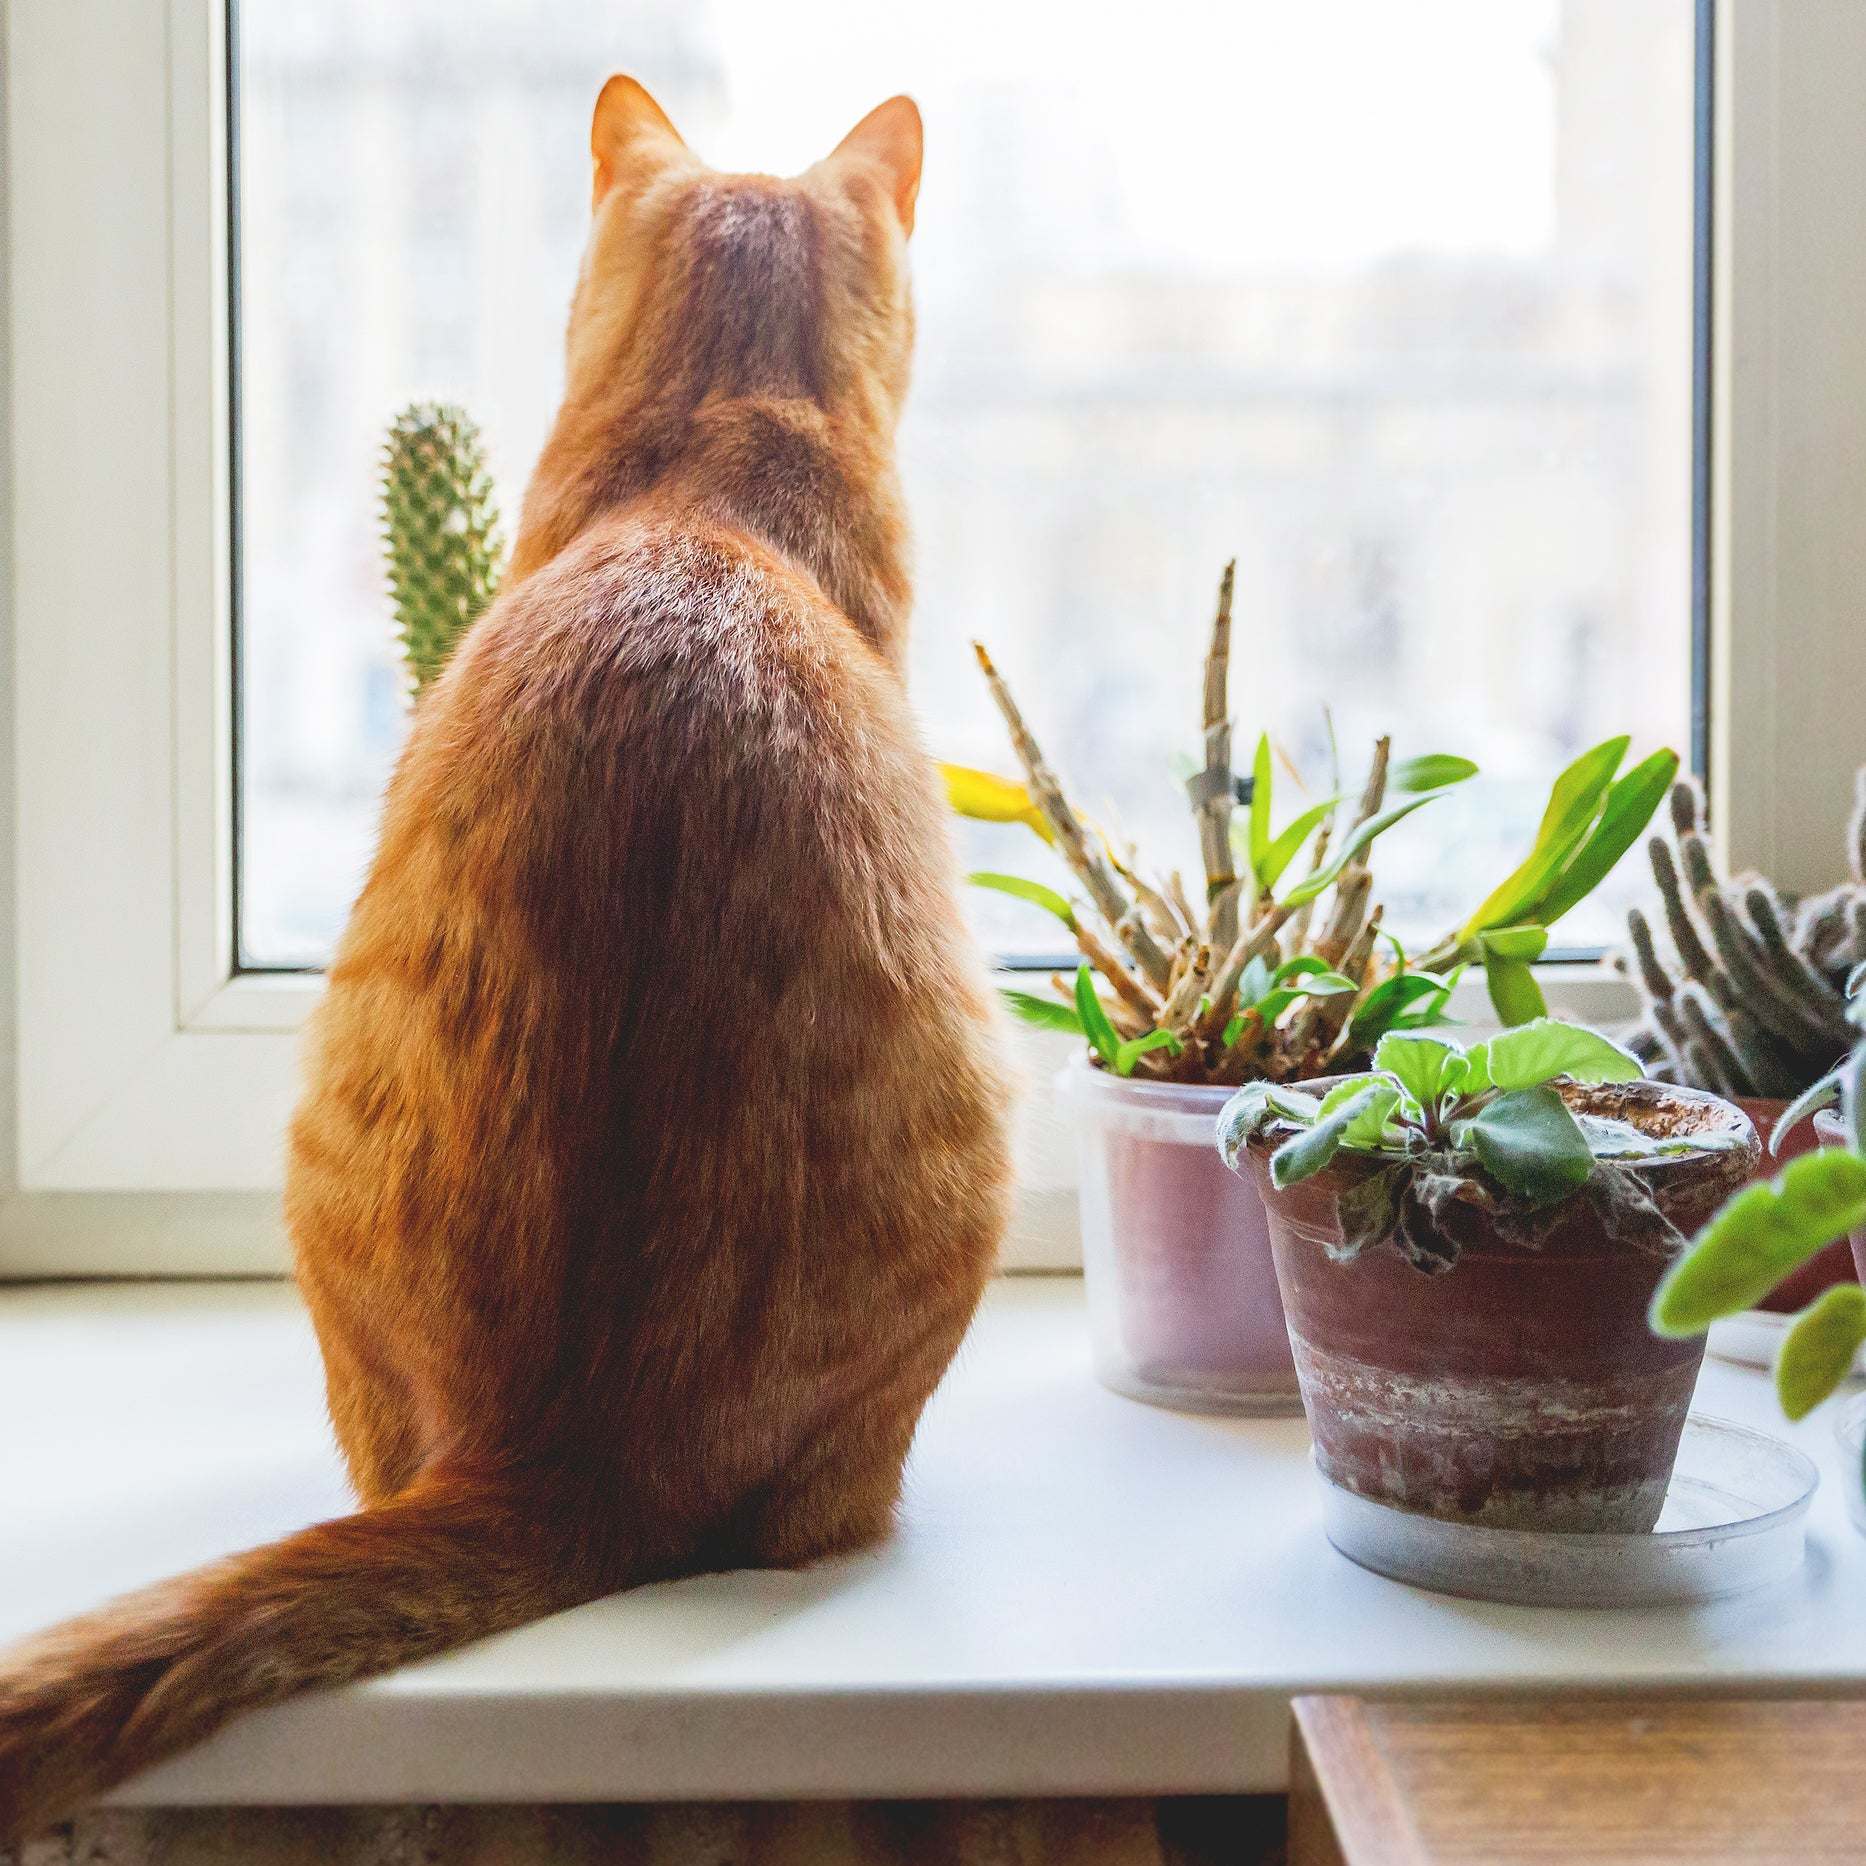 A-Z List of Houseplants That are Toxic to Your Pet